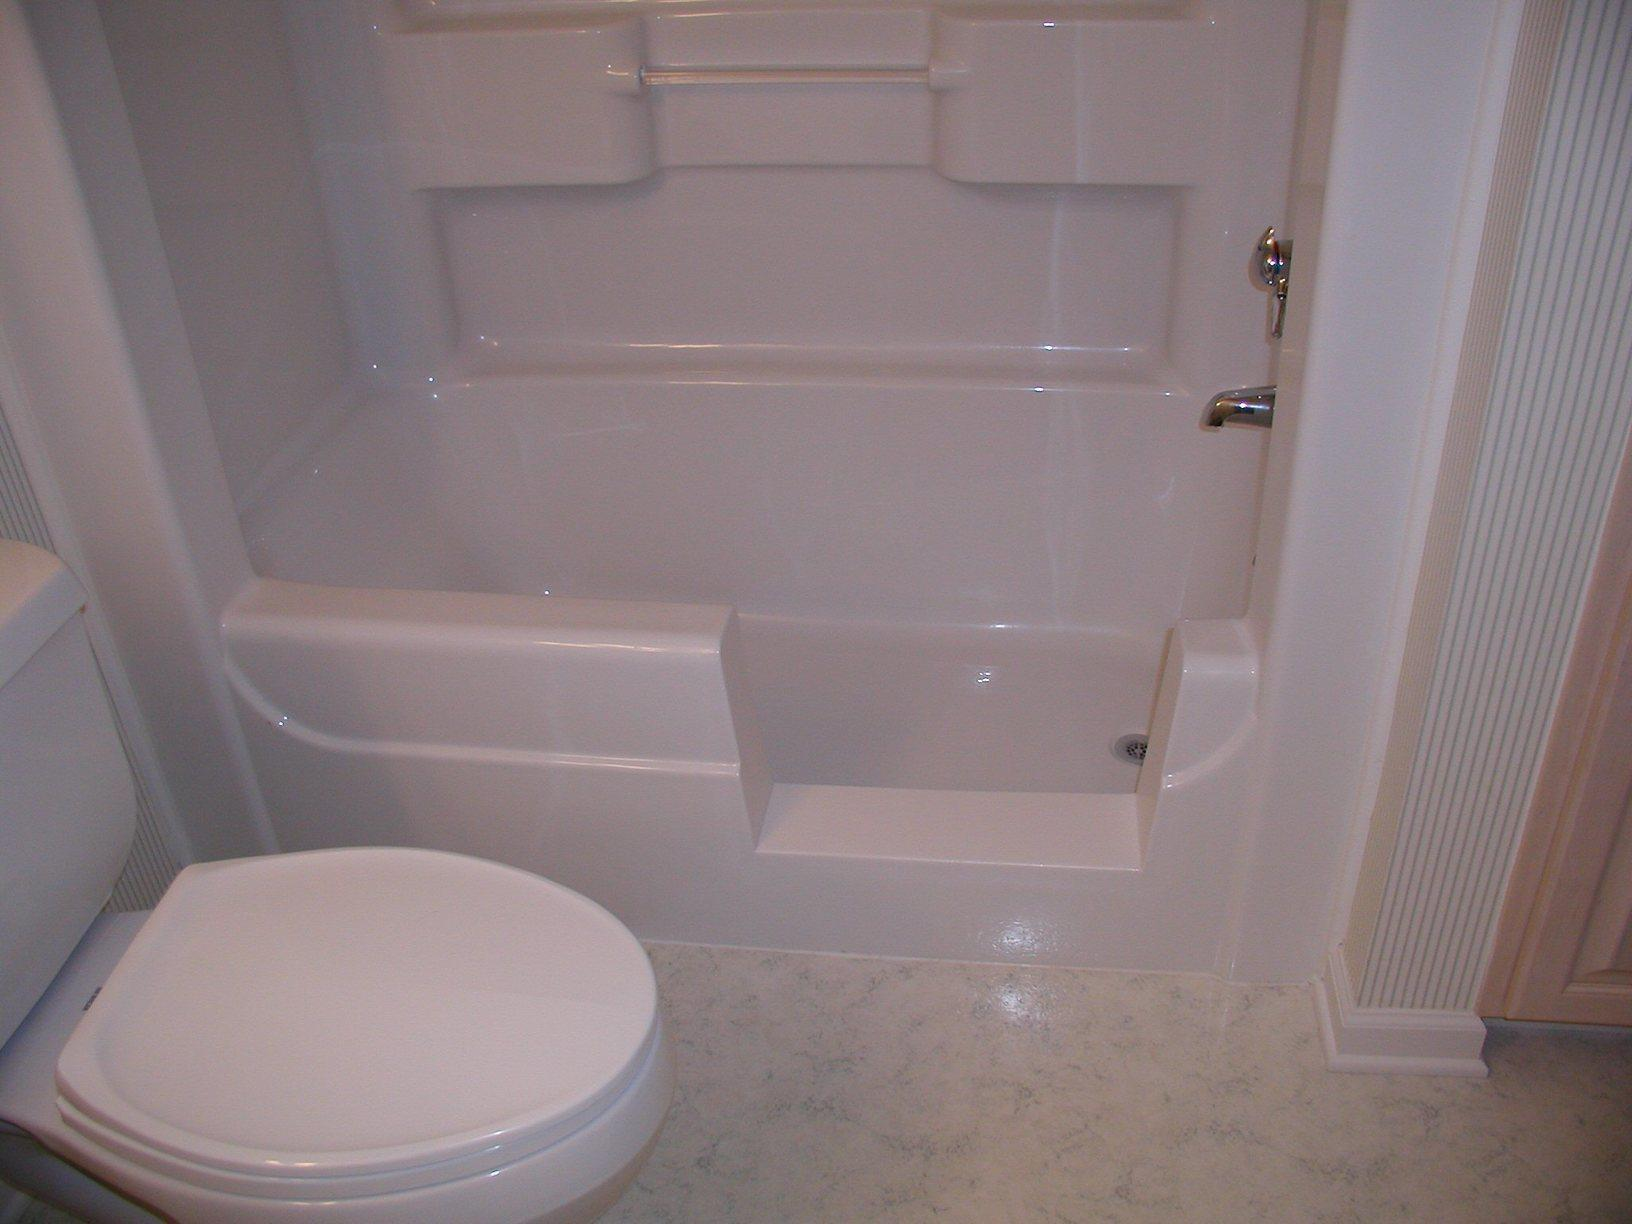 Step through tub access in Fairview - After Photo